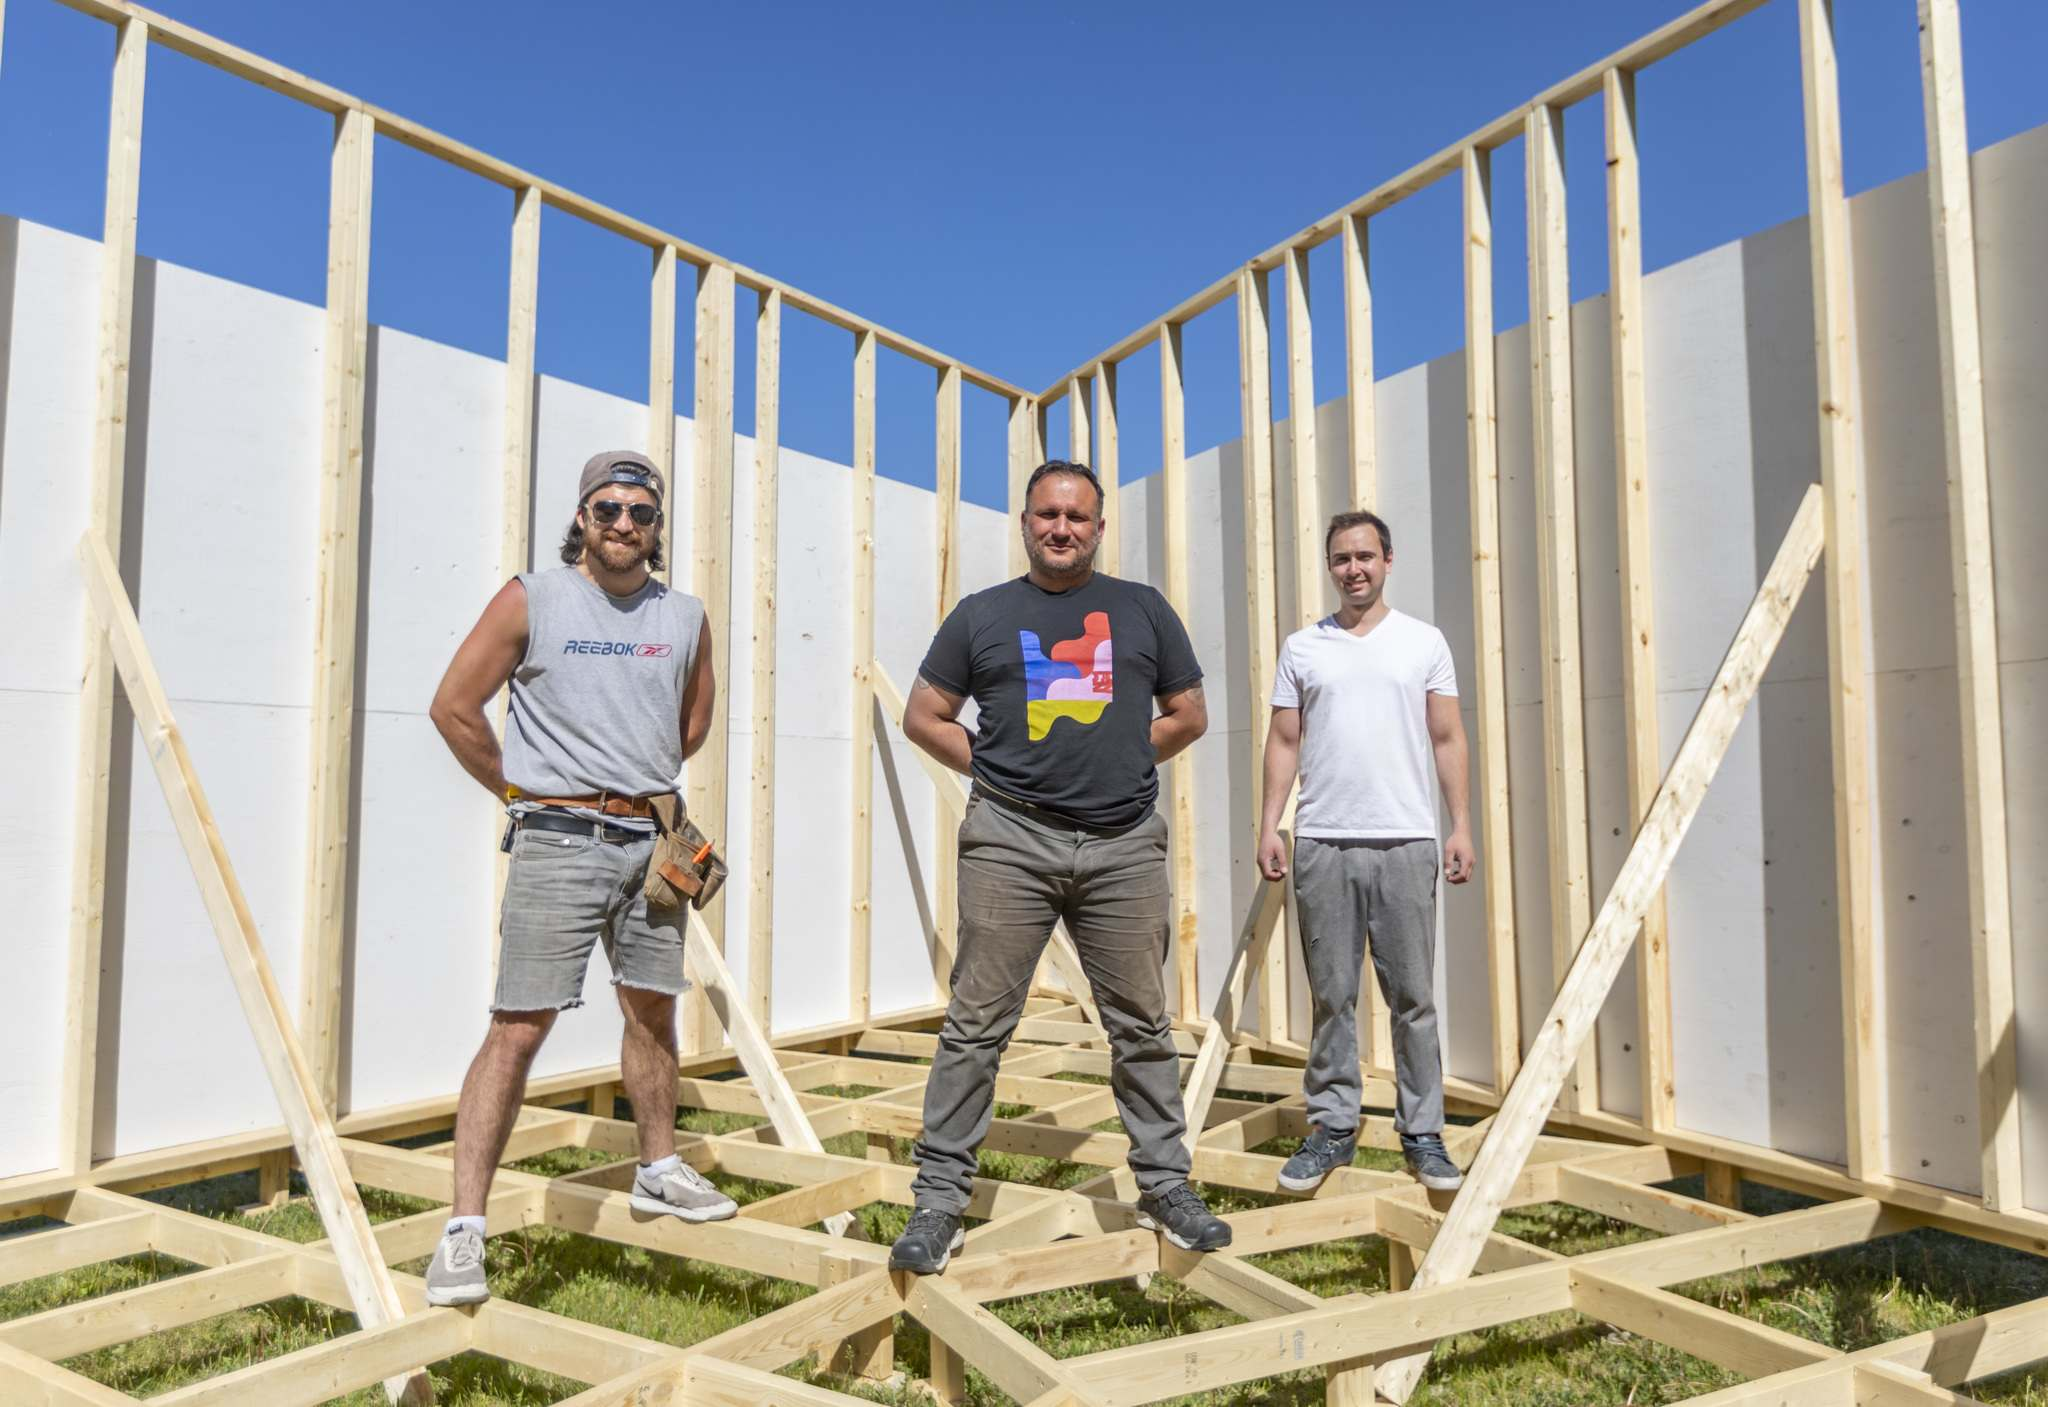 SASHA SEFTER / WINNIPEG FREE PRESS</p><p>RAW:Gallery founder Joe Kalturnyk (middle) and his crew Patrick Anderson (left) and Nick Kalturnyk have teamed up with jazz fest to create a temporary venue in St. Boniface.</p></p>